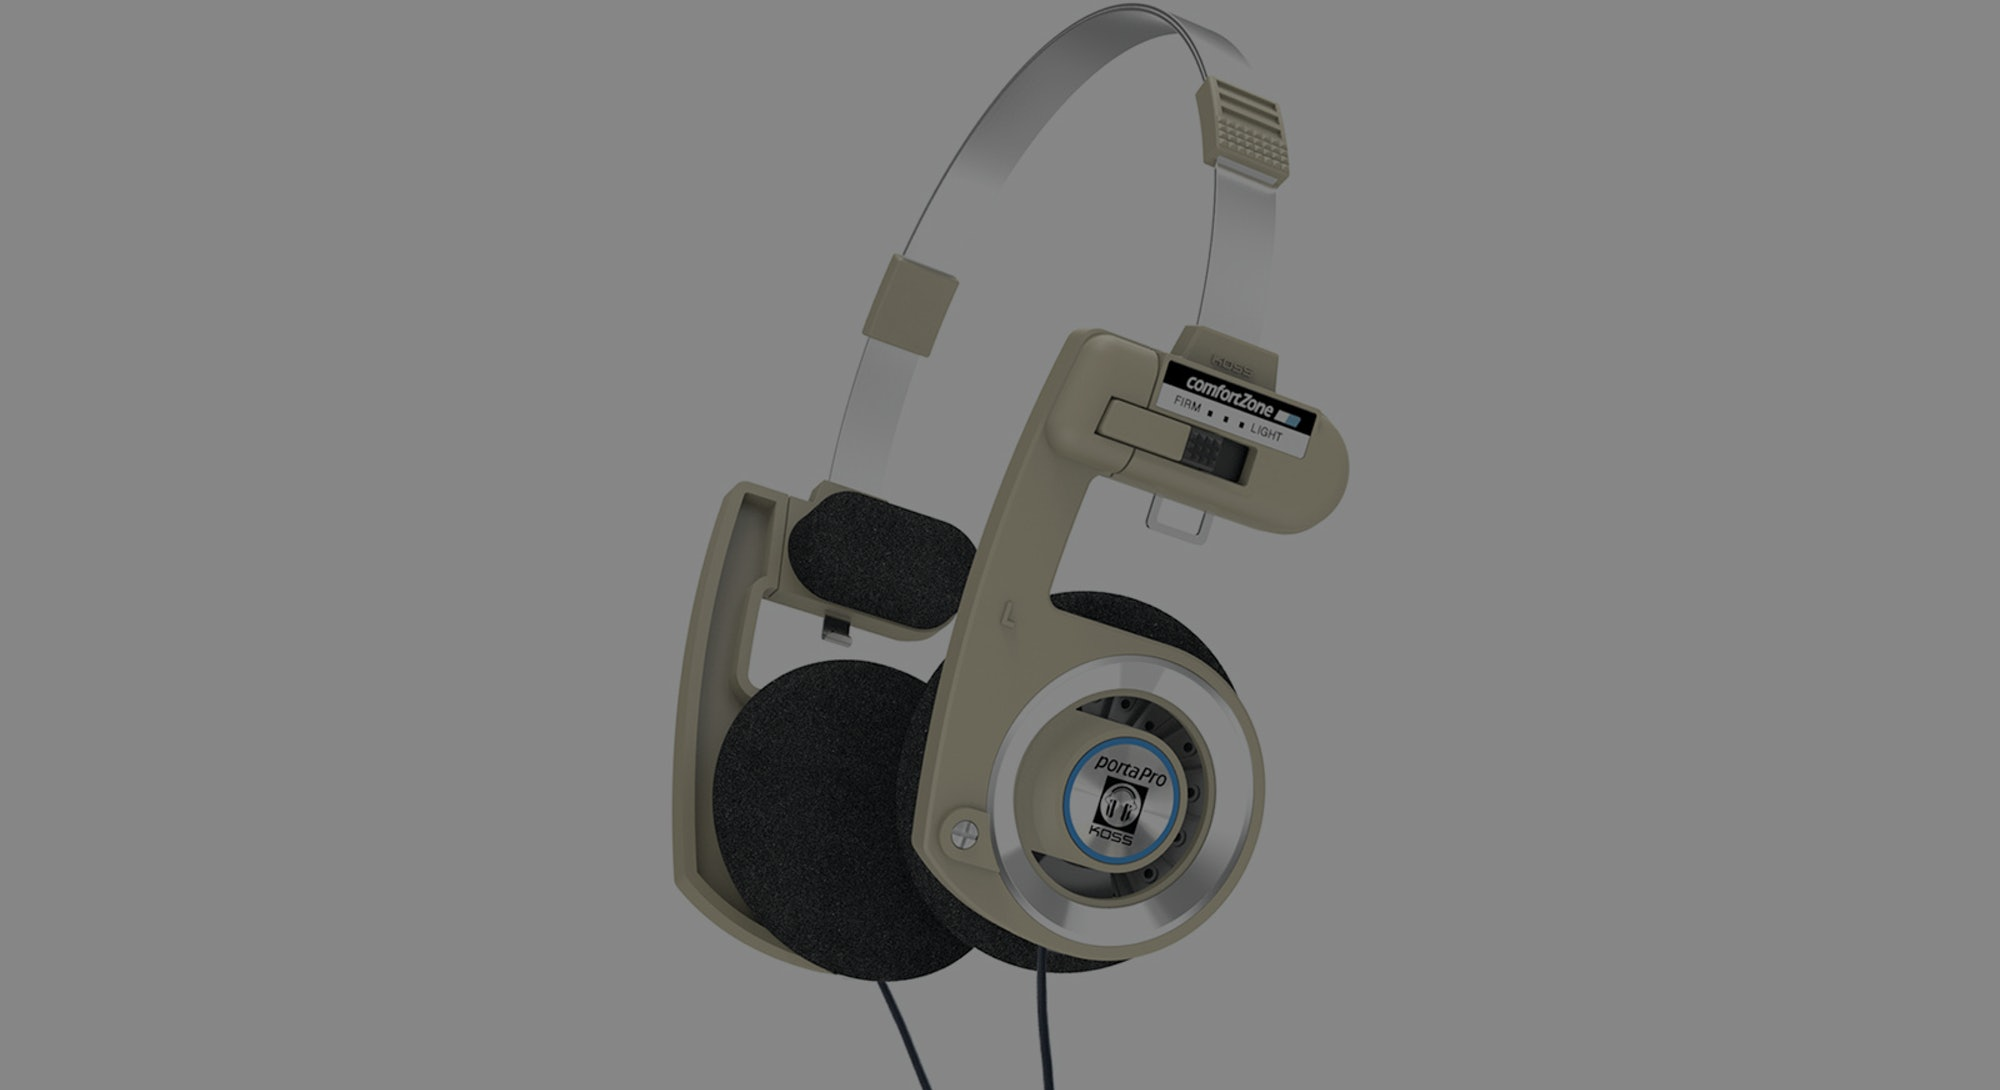 A picture of Koss' Porta Pro headphones.